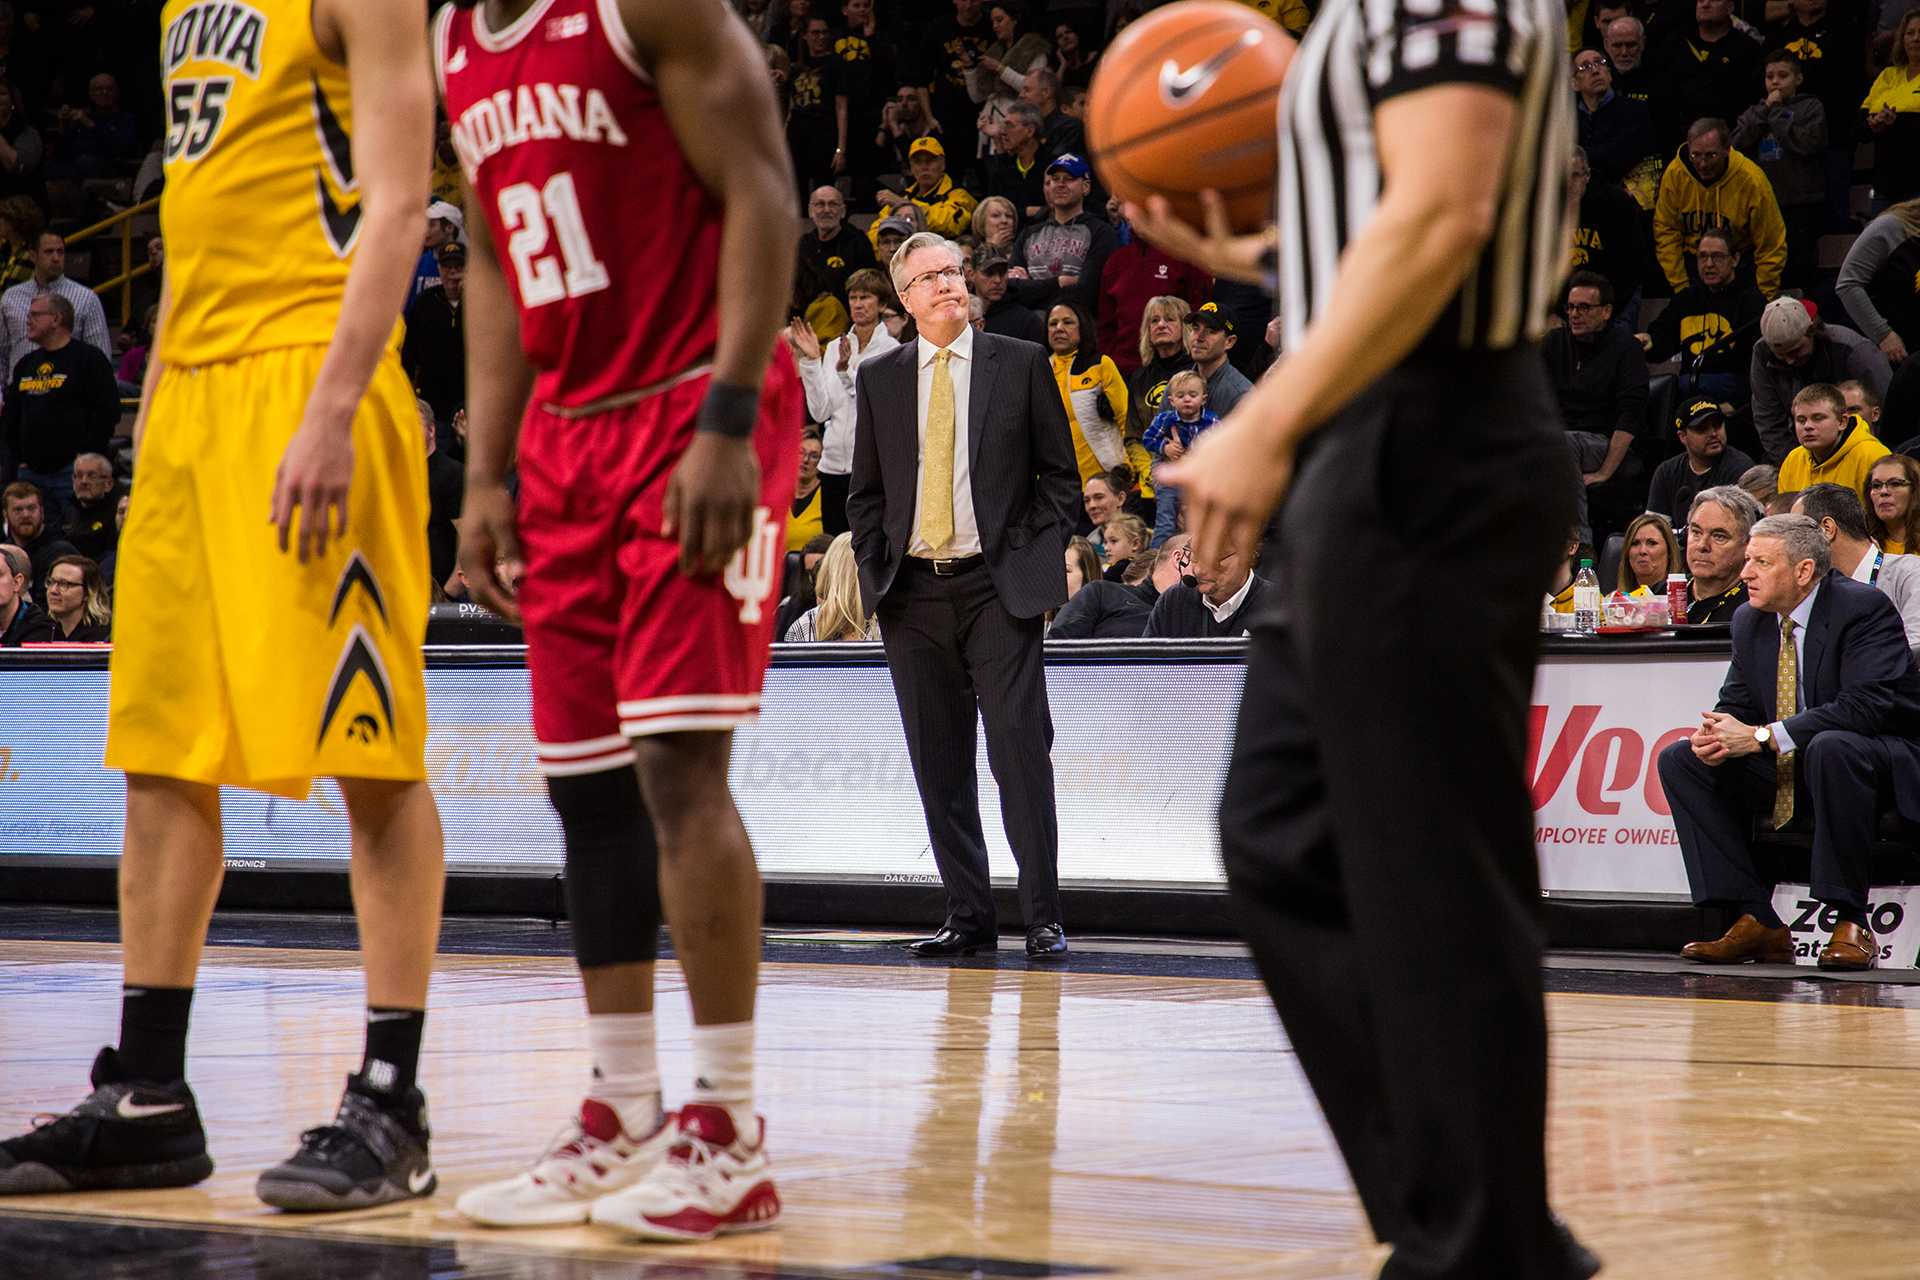 Iowa Head Coach Fran McCaffery reacts on the sidelines during a game against Indiana University at Carver-Hawkeye Arena on Saturday, Feb. 17, 2018. The Hoosiers defeated the Hawkeyes 84 to 82. (David Harmantas/The Daily Iowan)